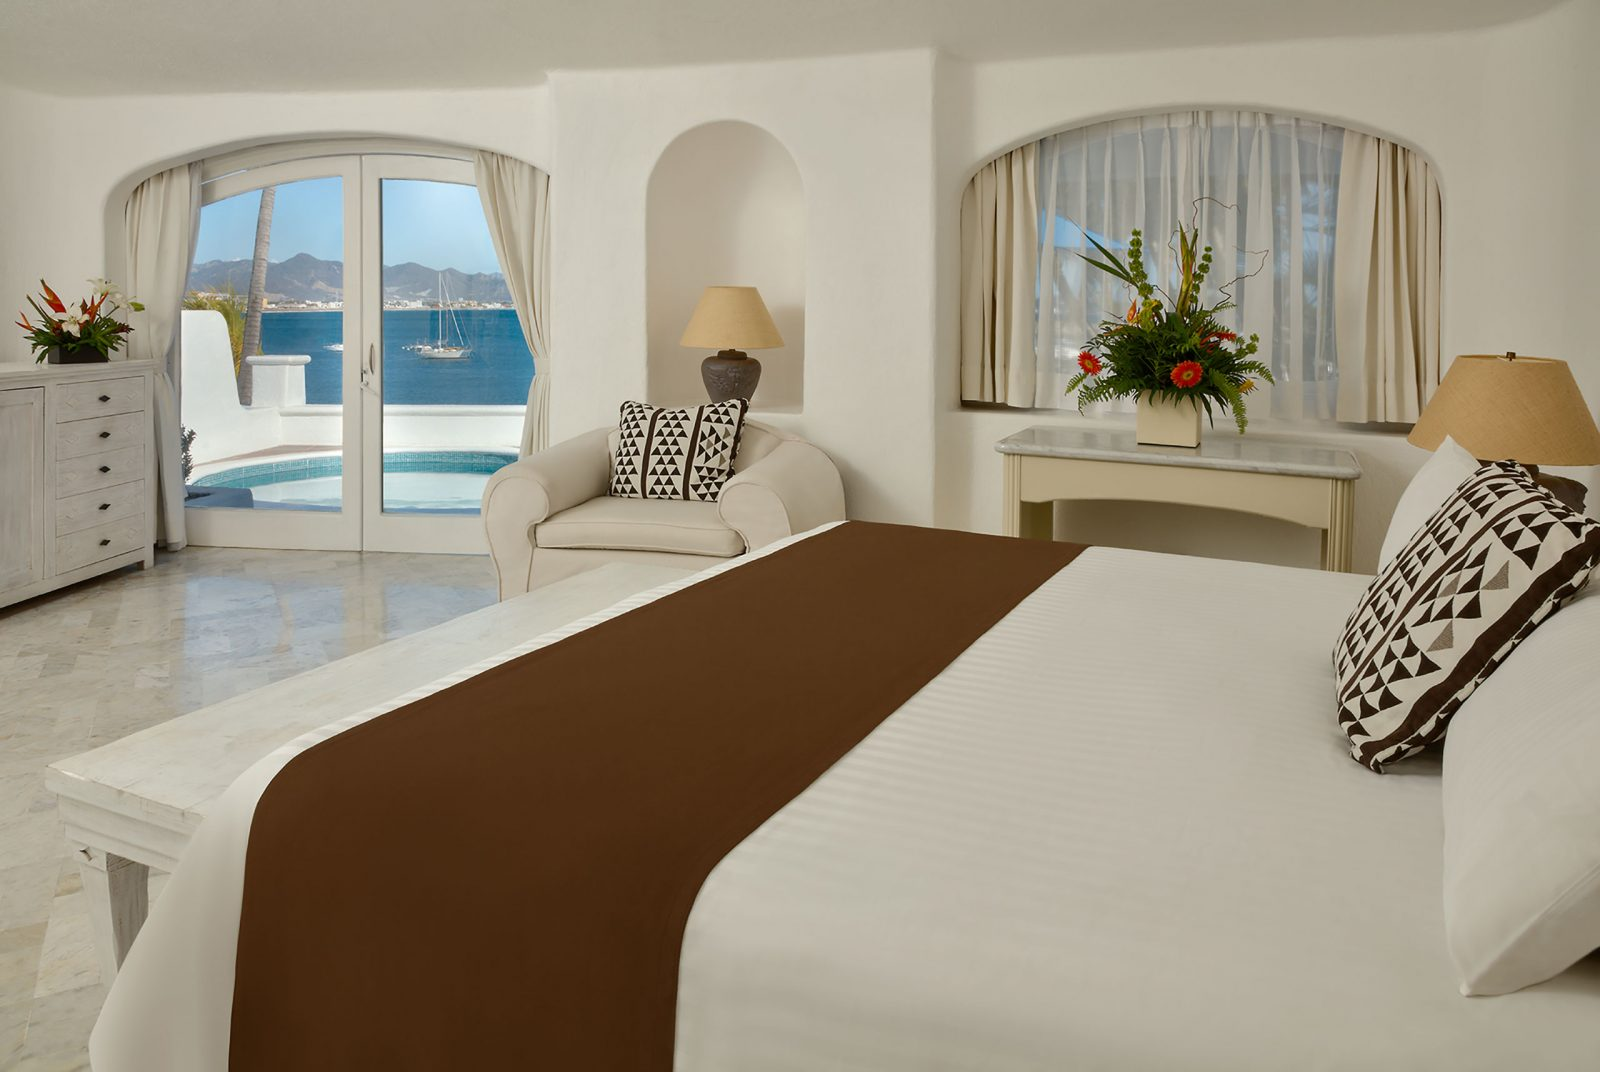 Suite at Hotel Las Hadas by Brisas